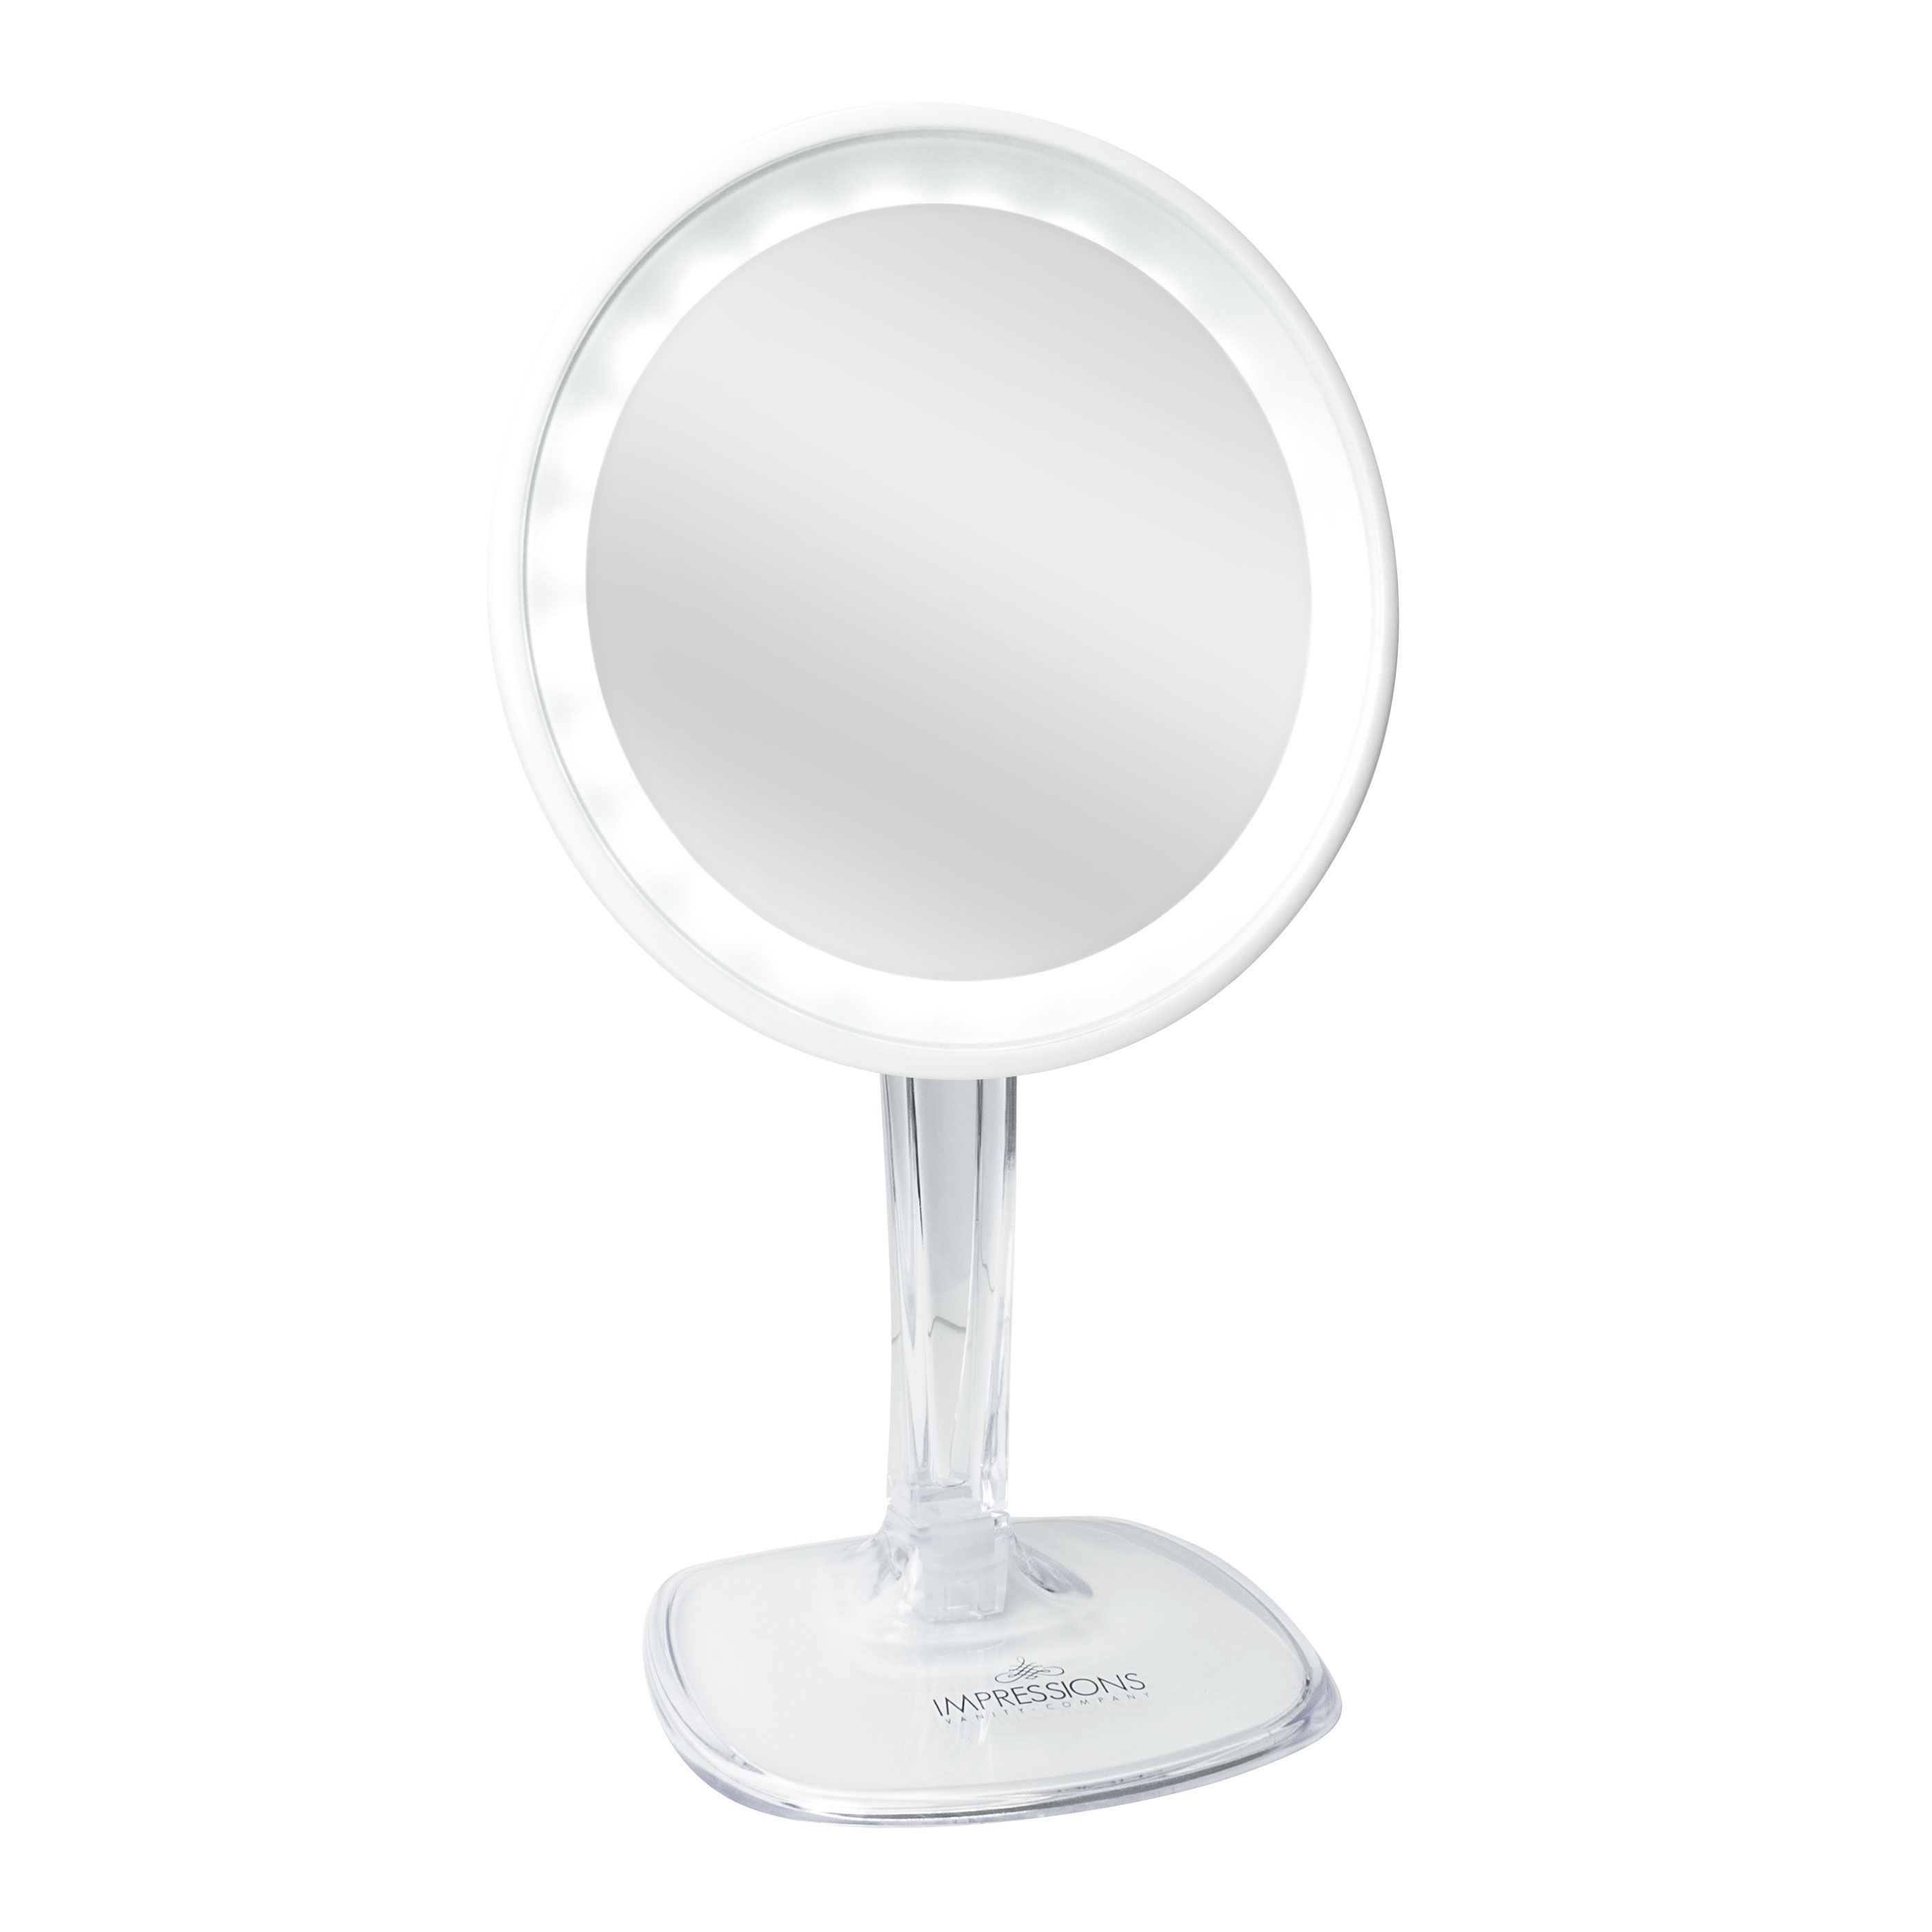 Makeup Mirrors Mirror Lighted Vanity Mirror Makeup Mirror With Lights